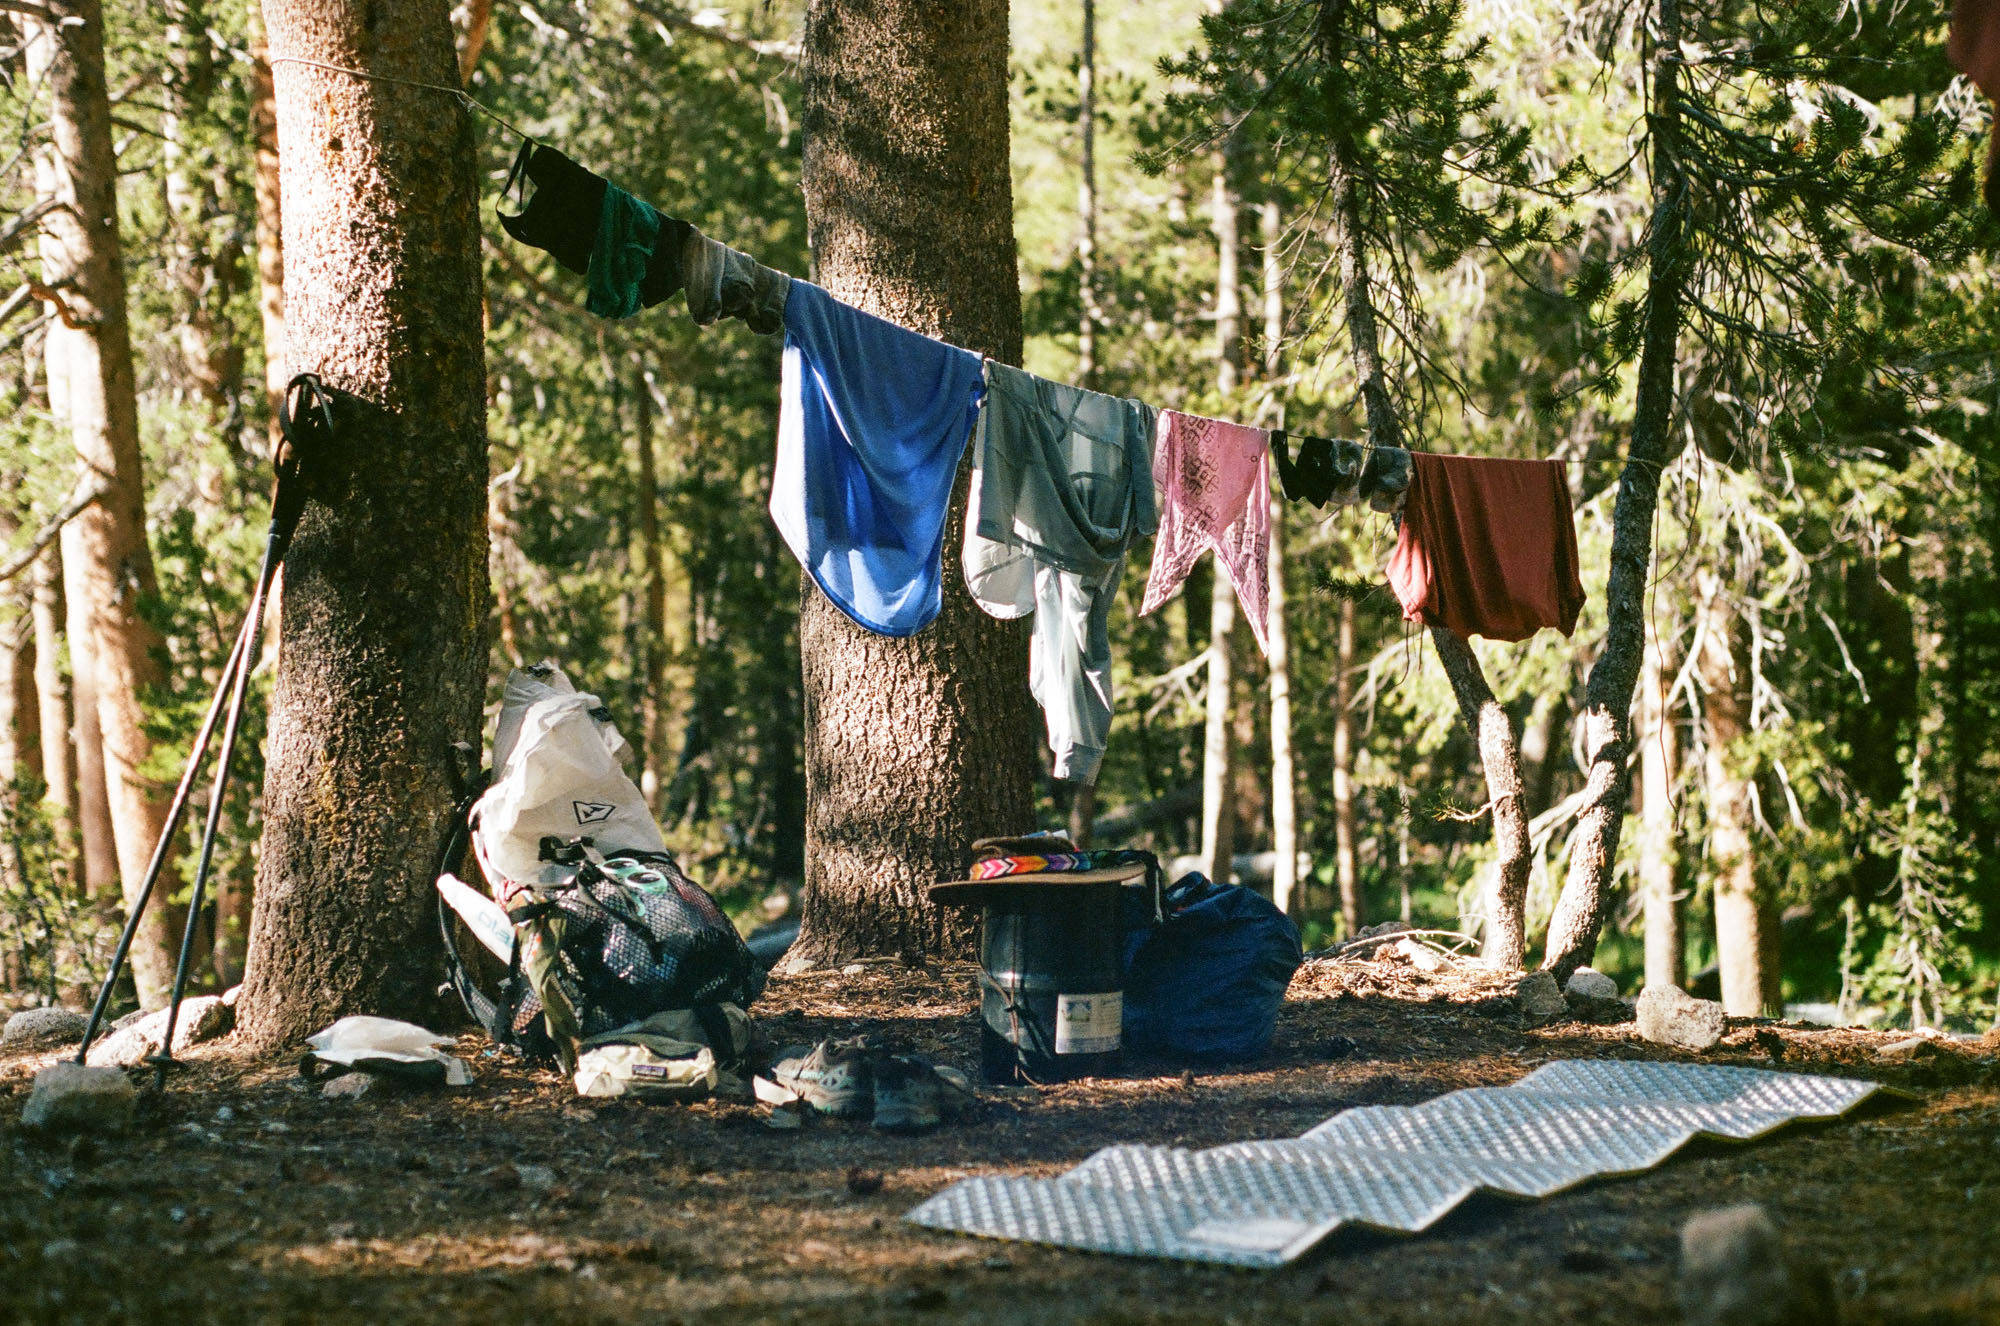 Therm-a-rest Z Lite Sol at camp, 35 mm film